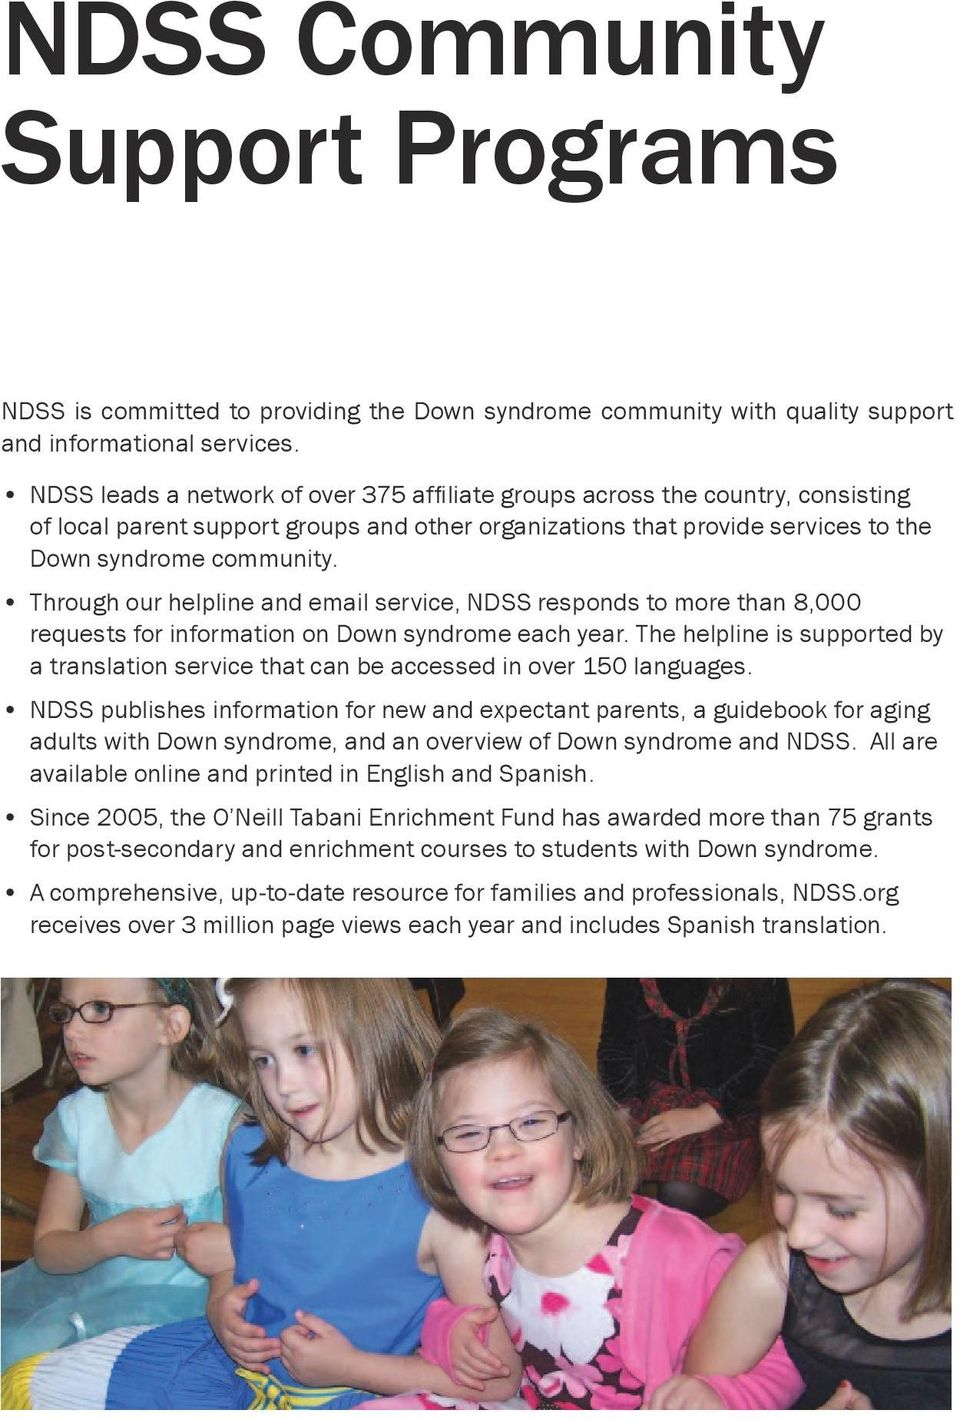 Through our helpline and email service, NDSS responds to more than 8,000 requests for information on Down syndrome each year.